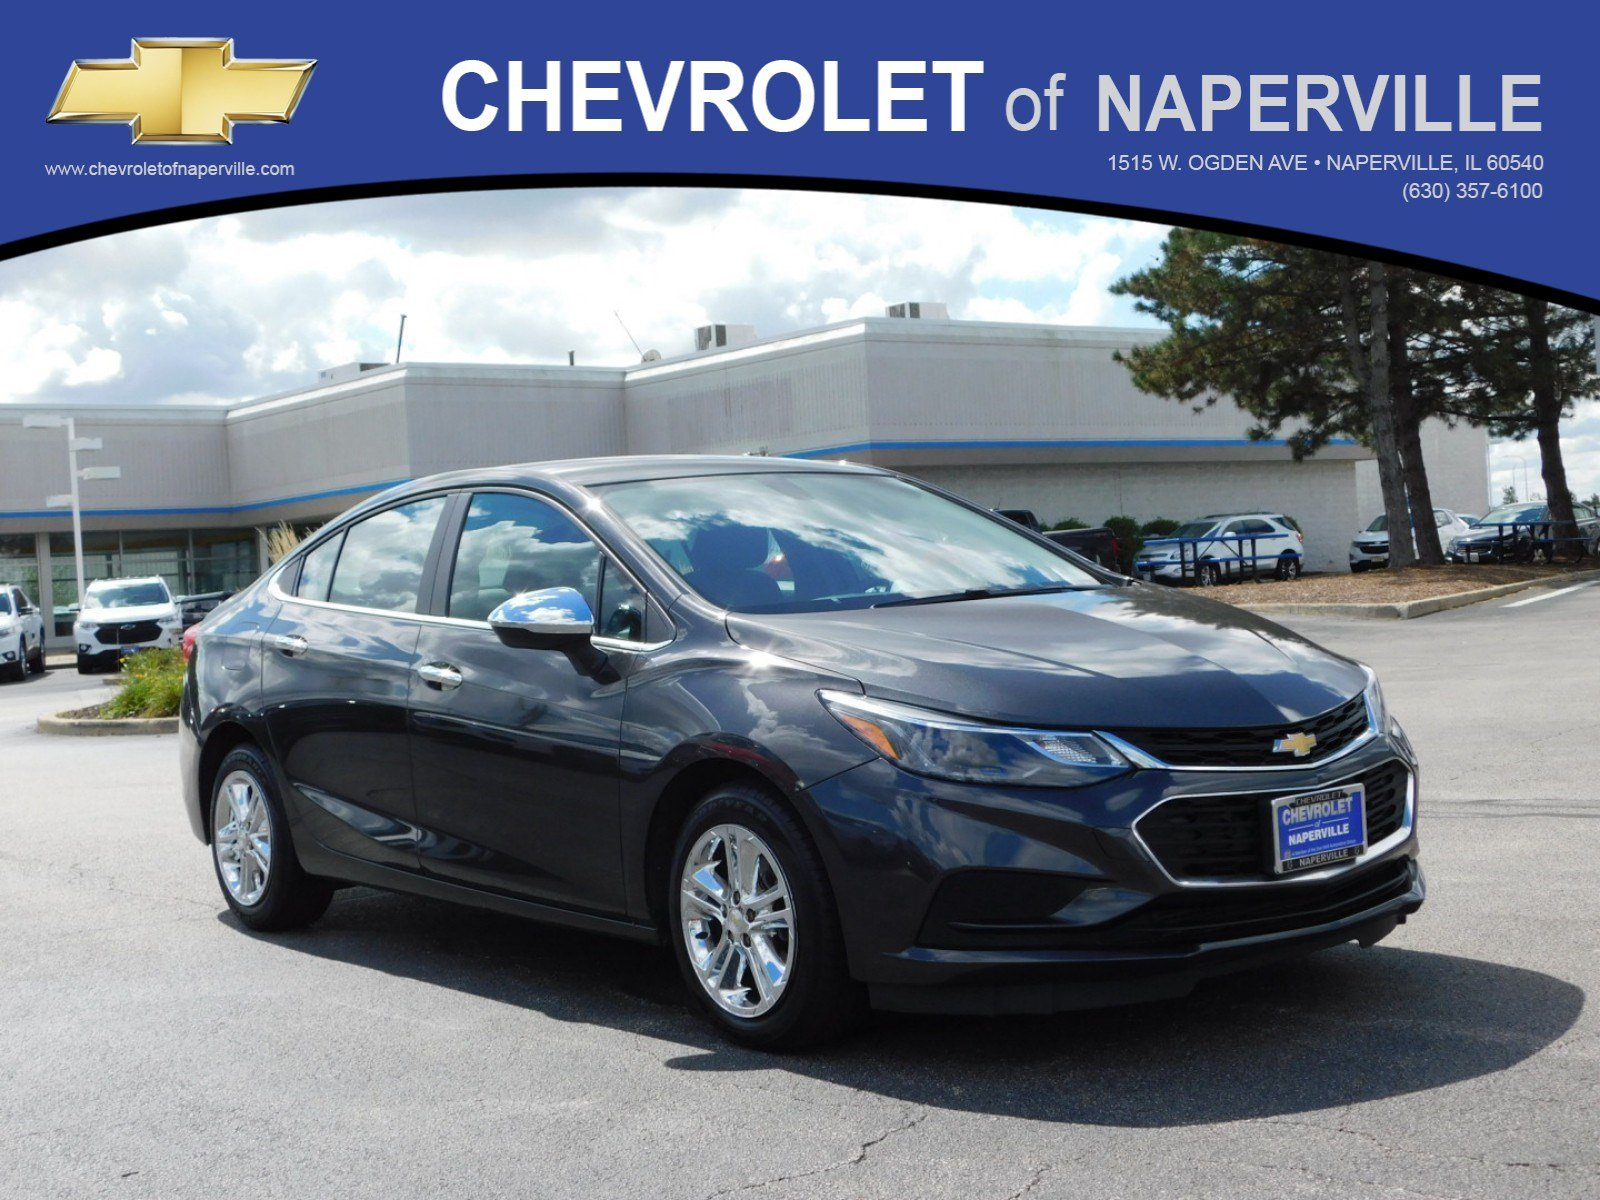 Chevrolet Cruze Owners Manual: Online Owner Center